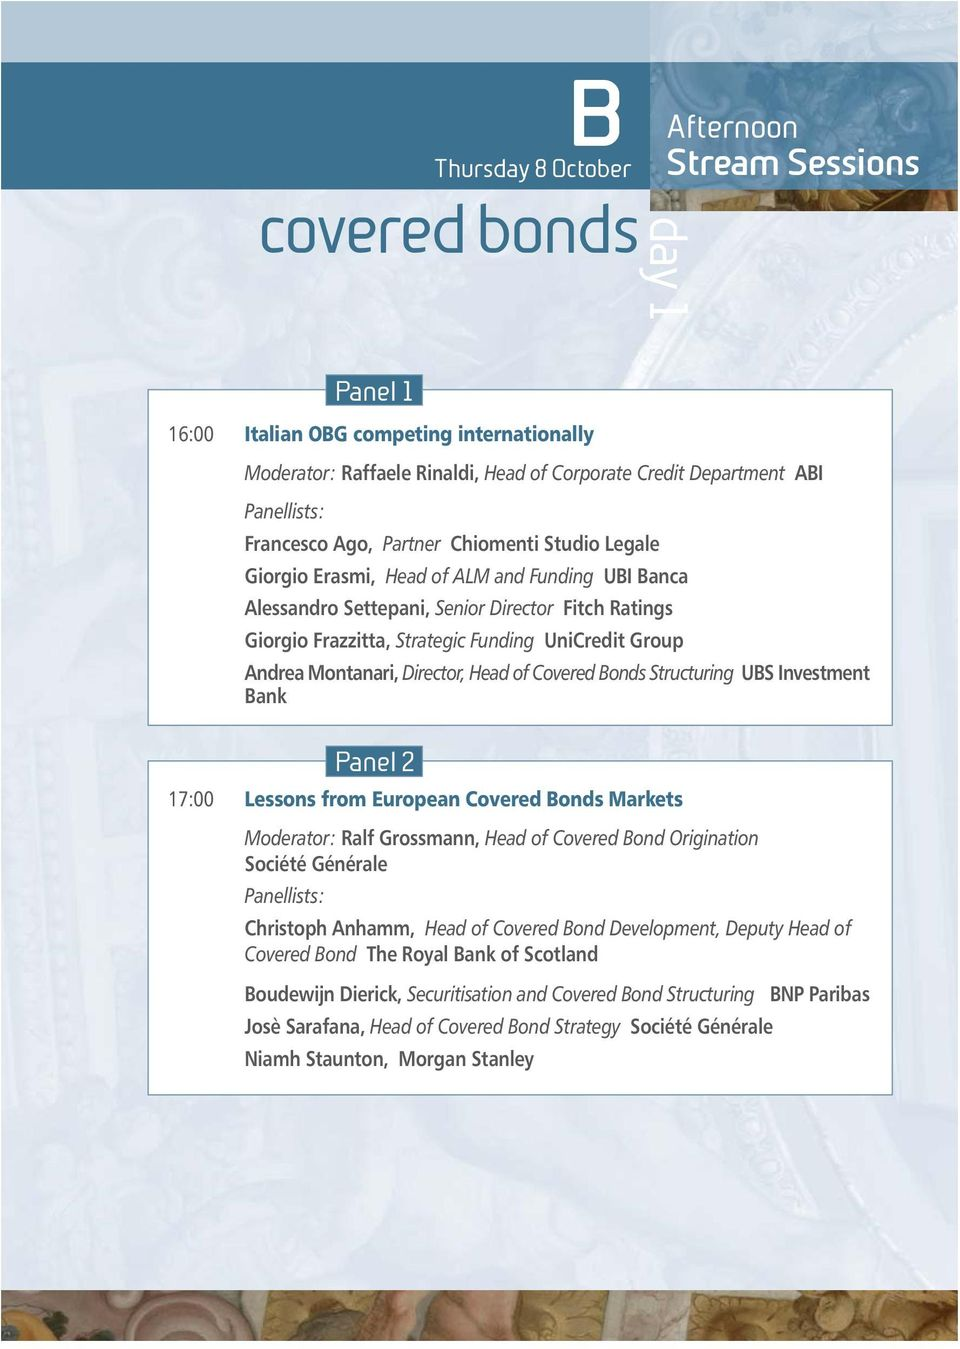 Montanari, Director, Head of Covered Bonds Structuring UBS Investment Bank Panel 2 17:00 Lessons from European Covered Bonds Markets Moderator: Ralf Grossmann, Head of Covered Bond Origination